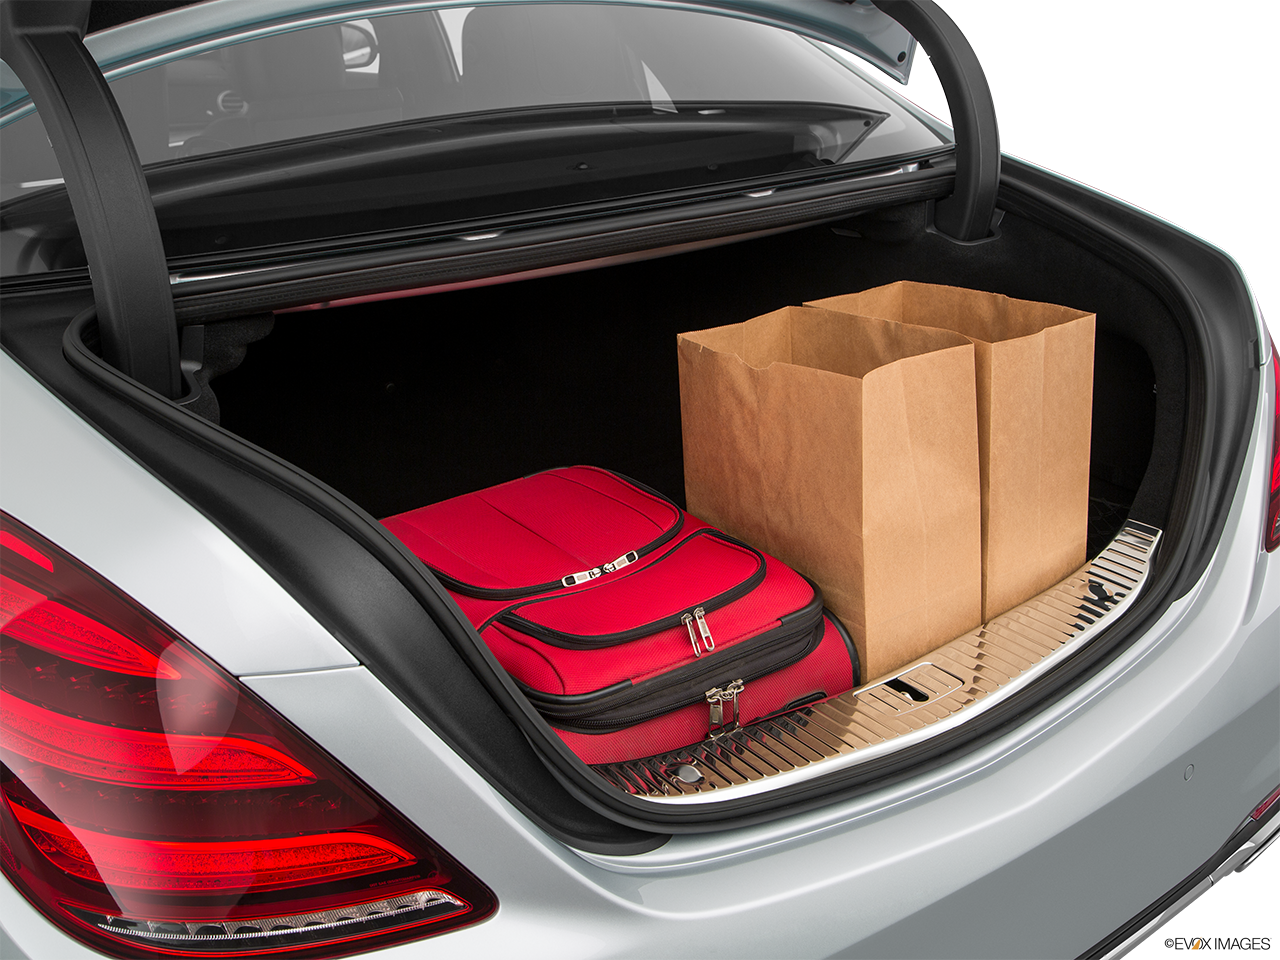 Trunk view of the Mercedes-Benz S560e